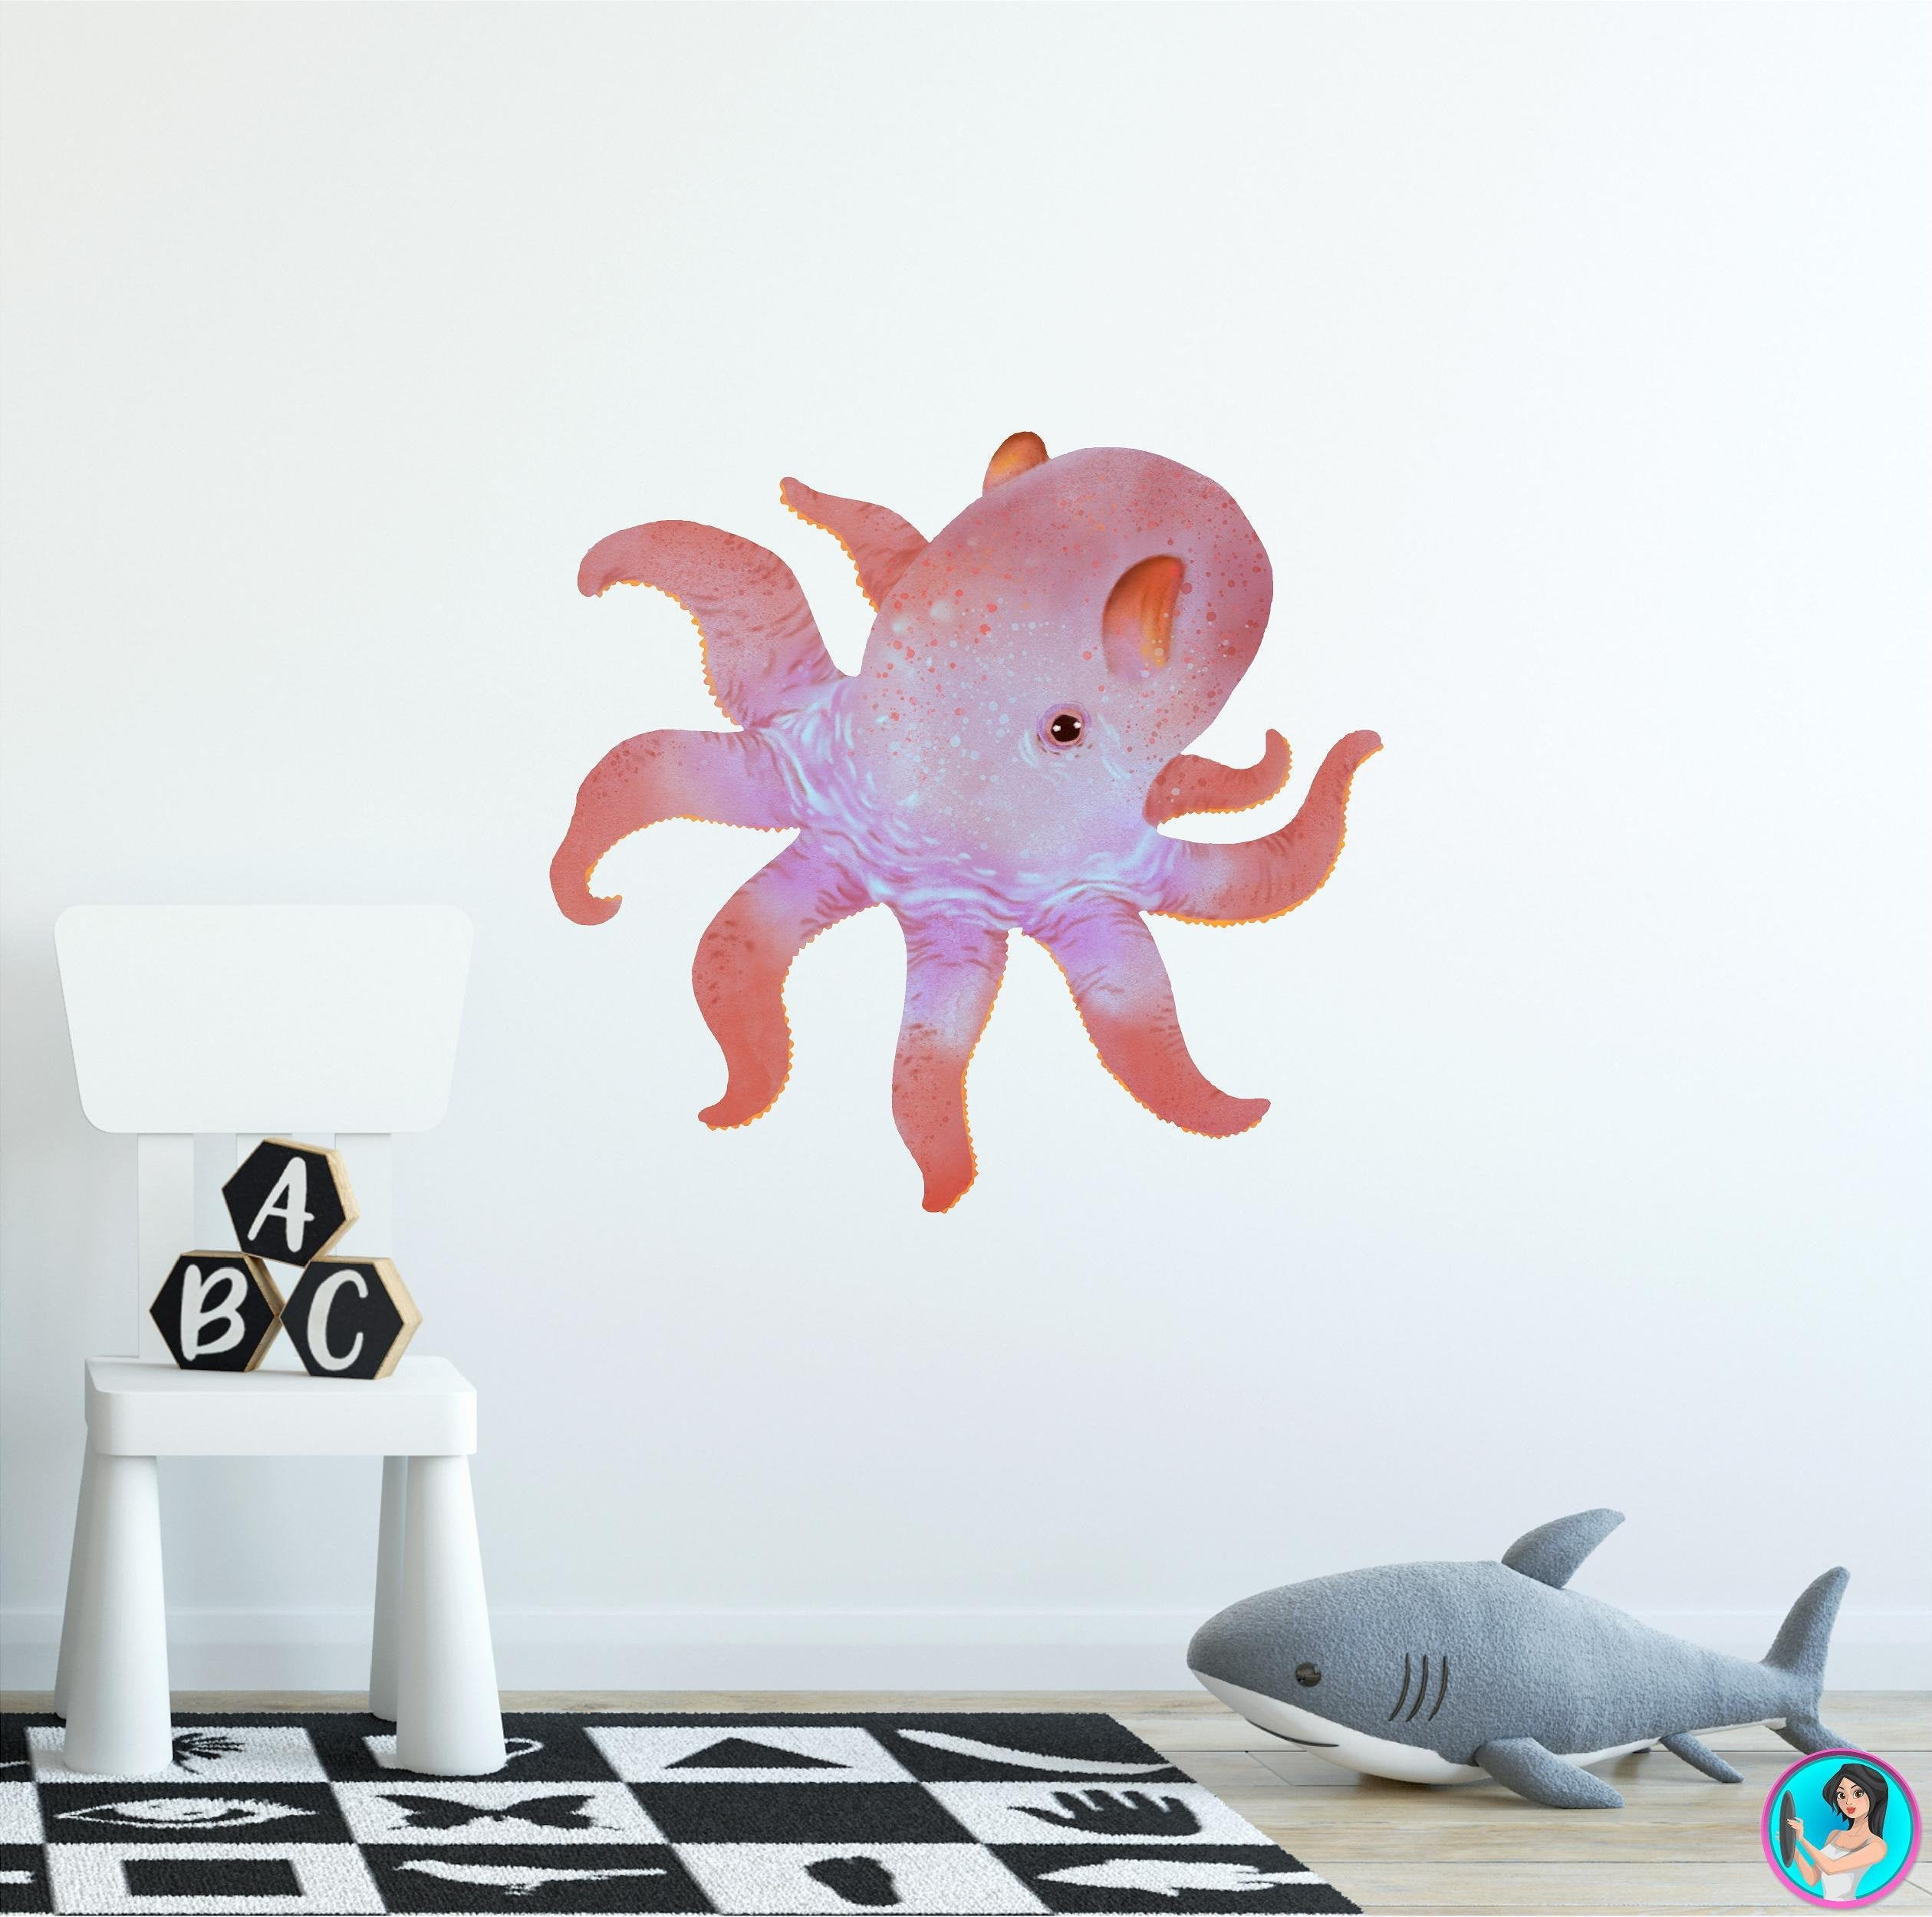 Dumbo Octopus Wall Decal Removable Fabric Vinyl Cute Sea Animal Wall Sticker